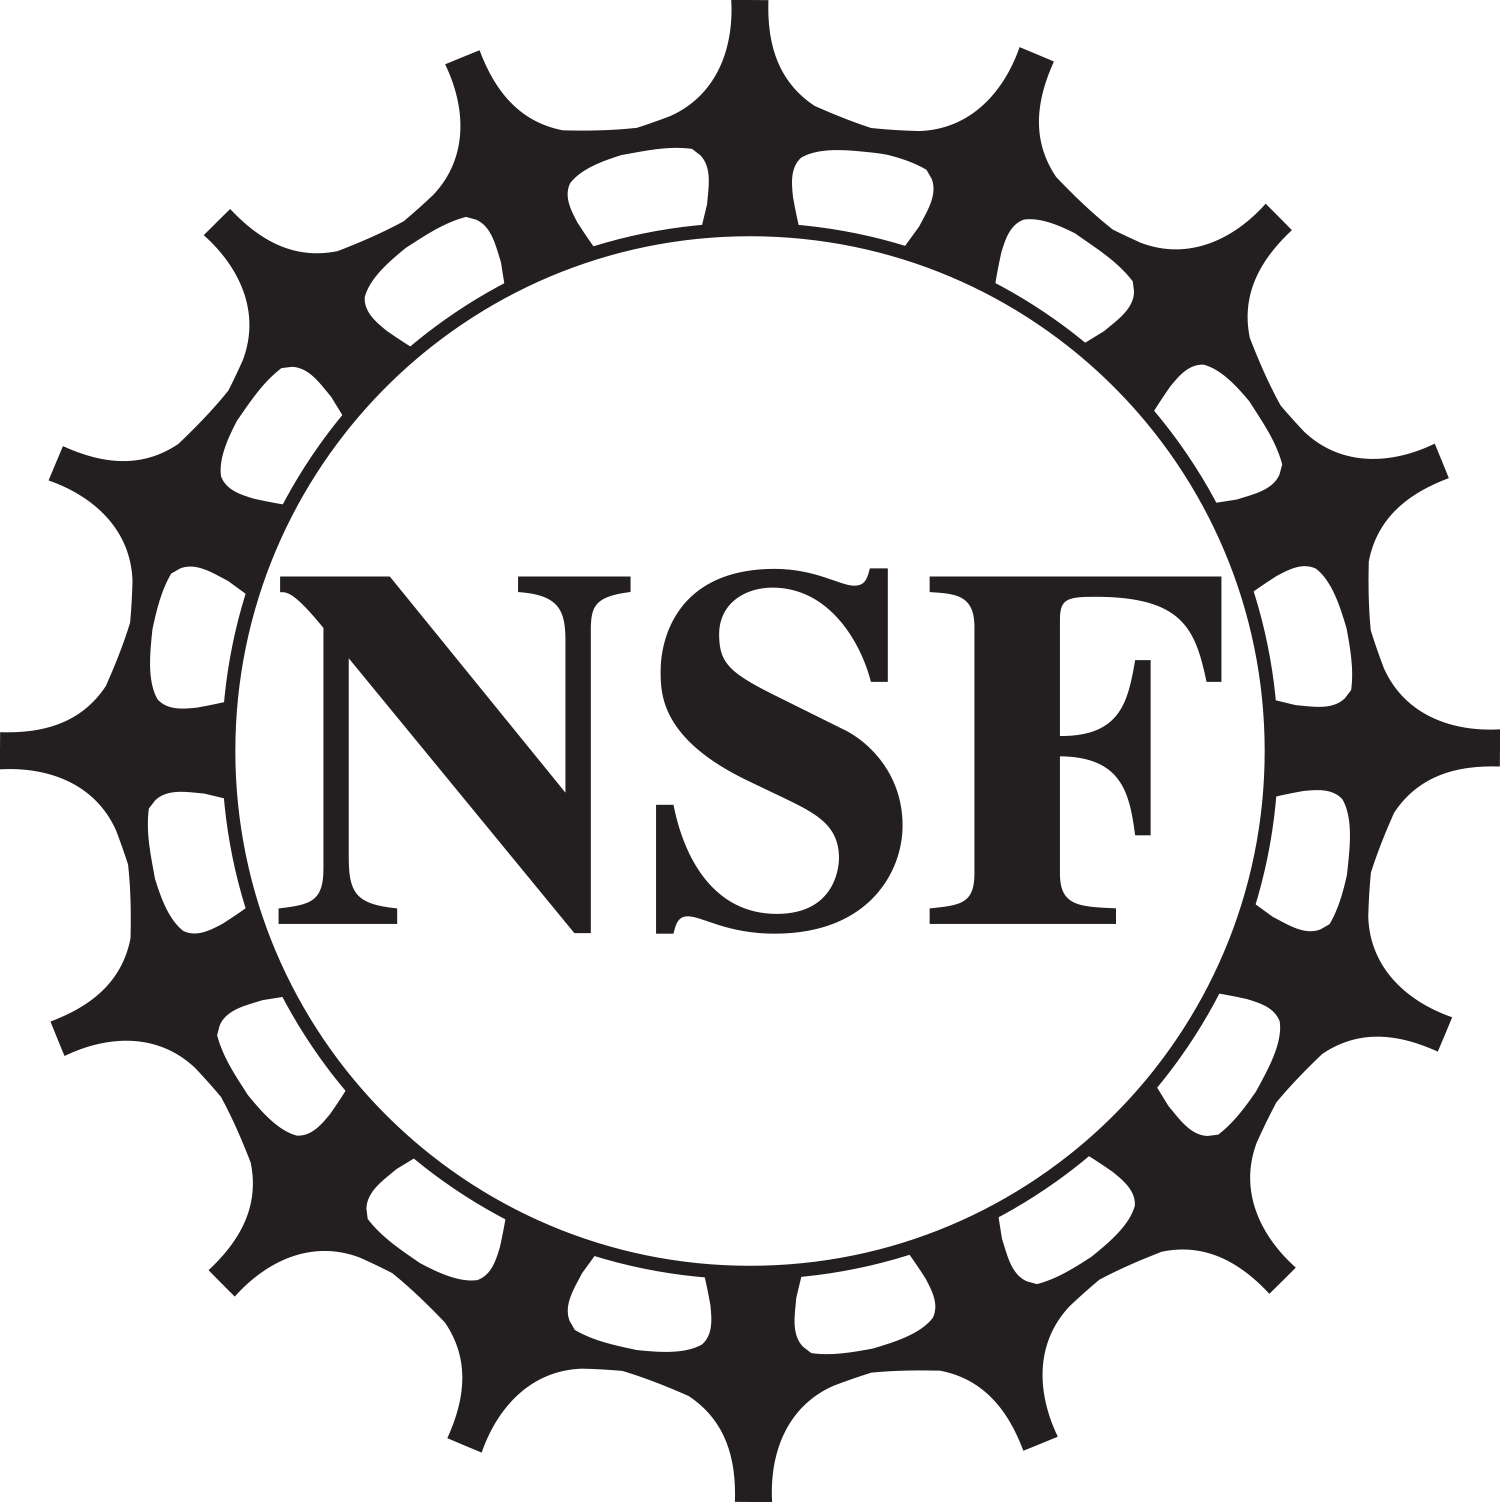 The National Science Foundation logo with the letters N S F inside a circle